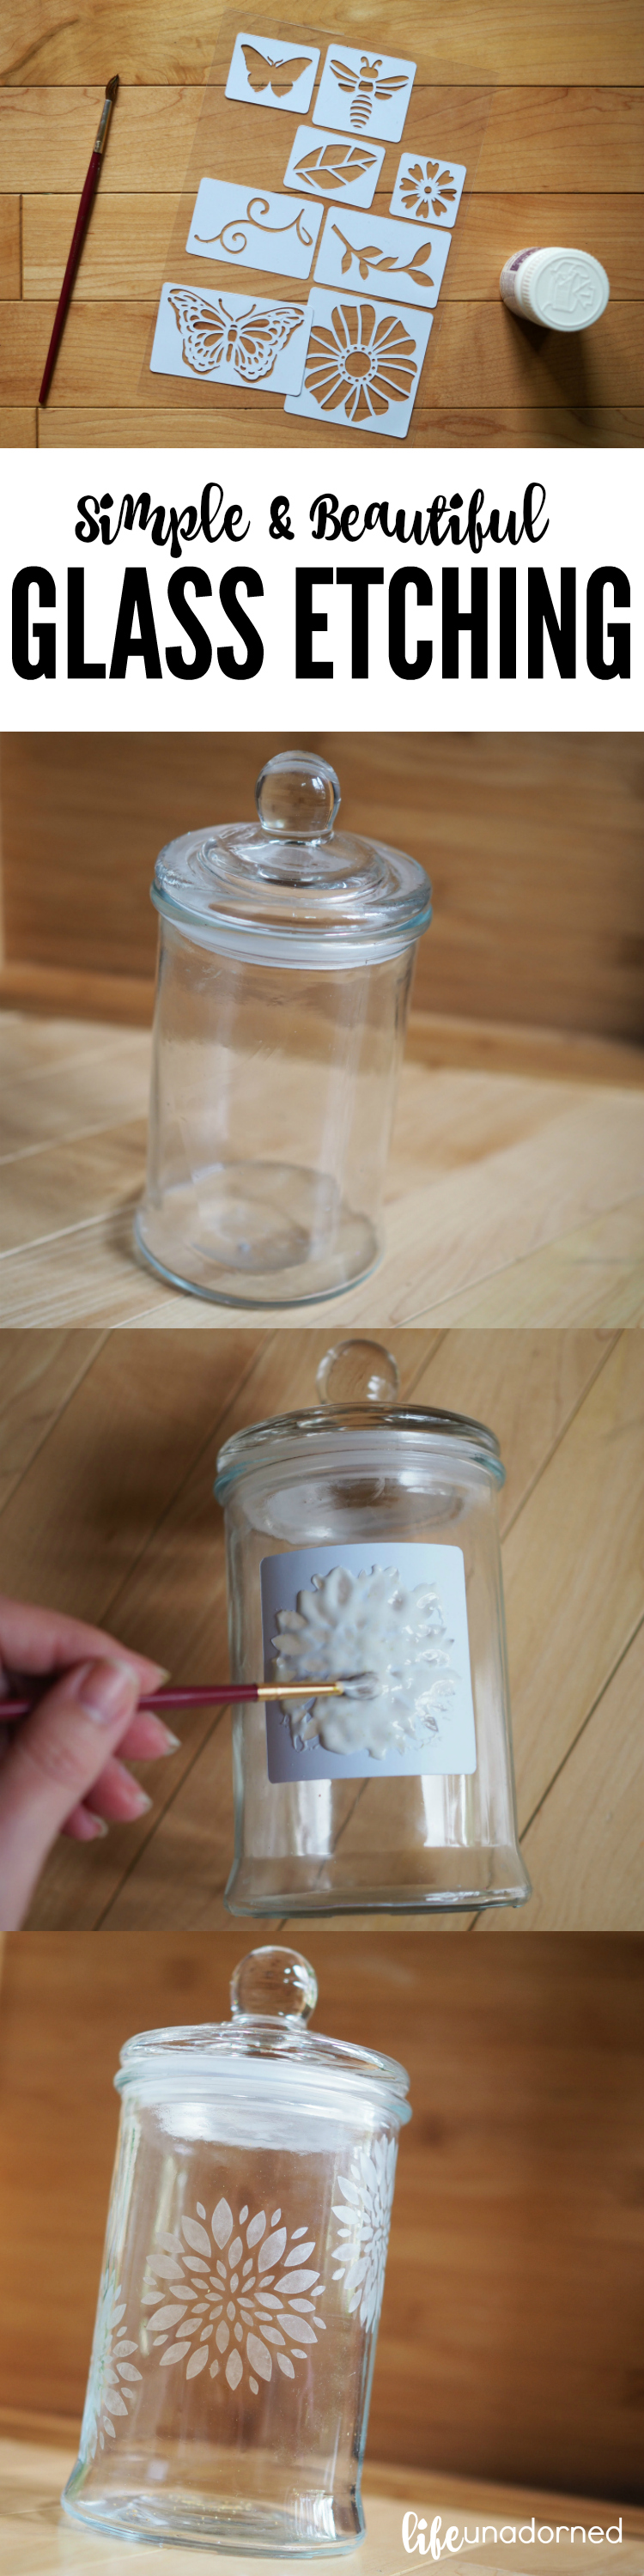 How To Simple and Beautiful Glass Etching Tutorial